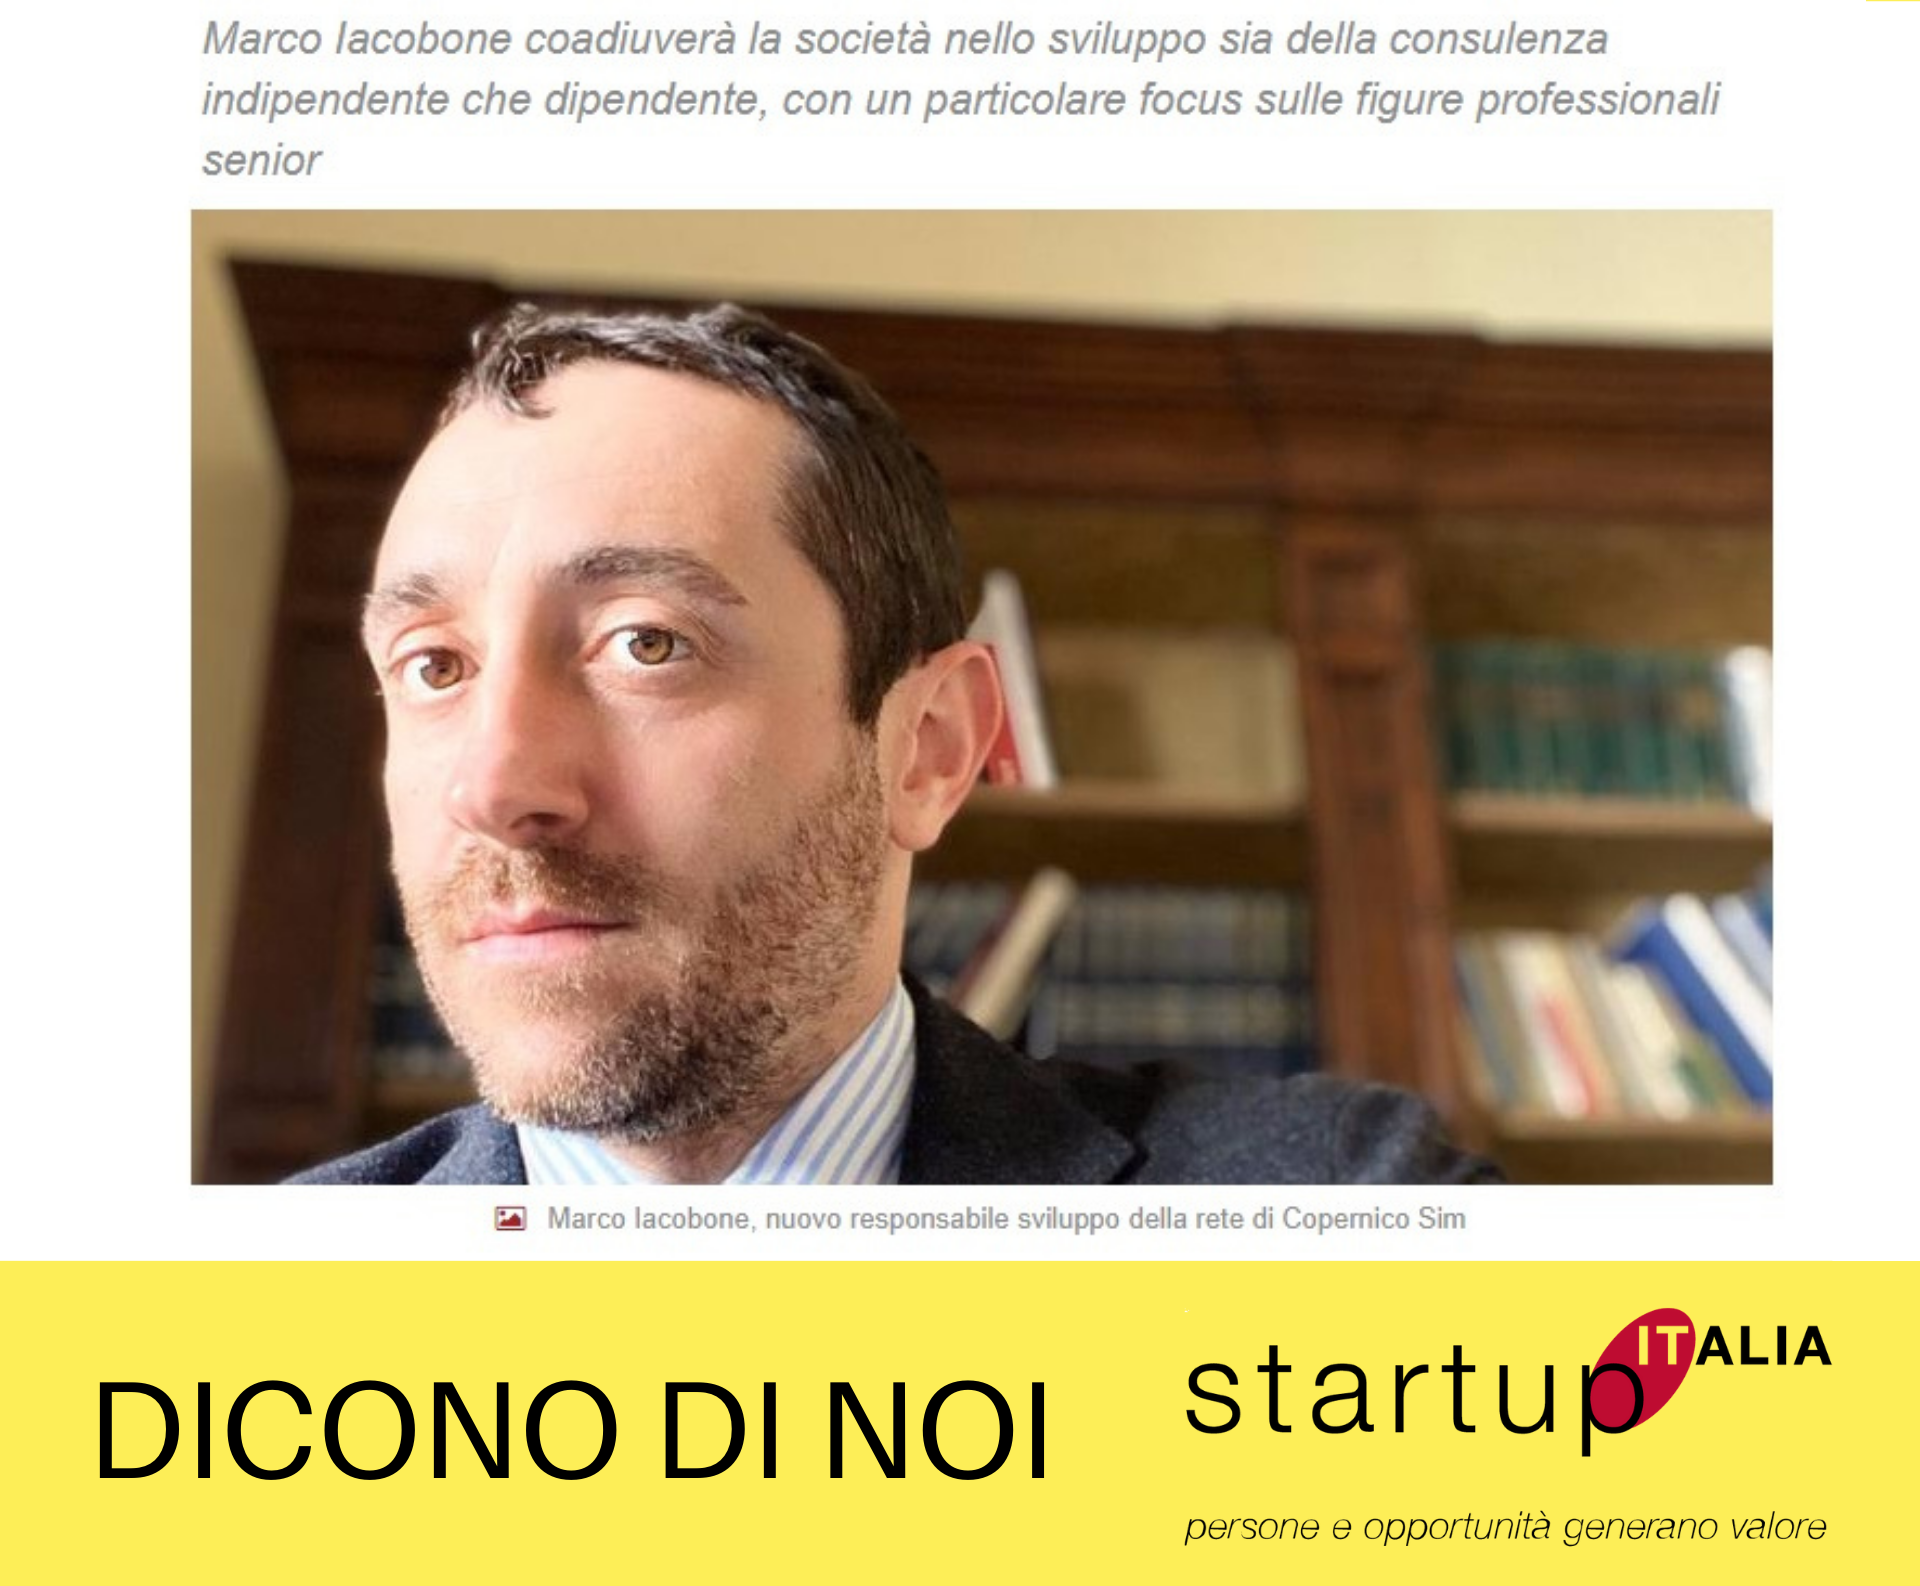 referenze Startup Italia - Marco Iacobone